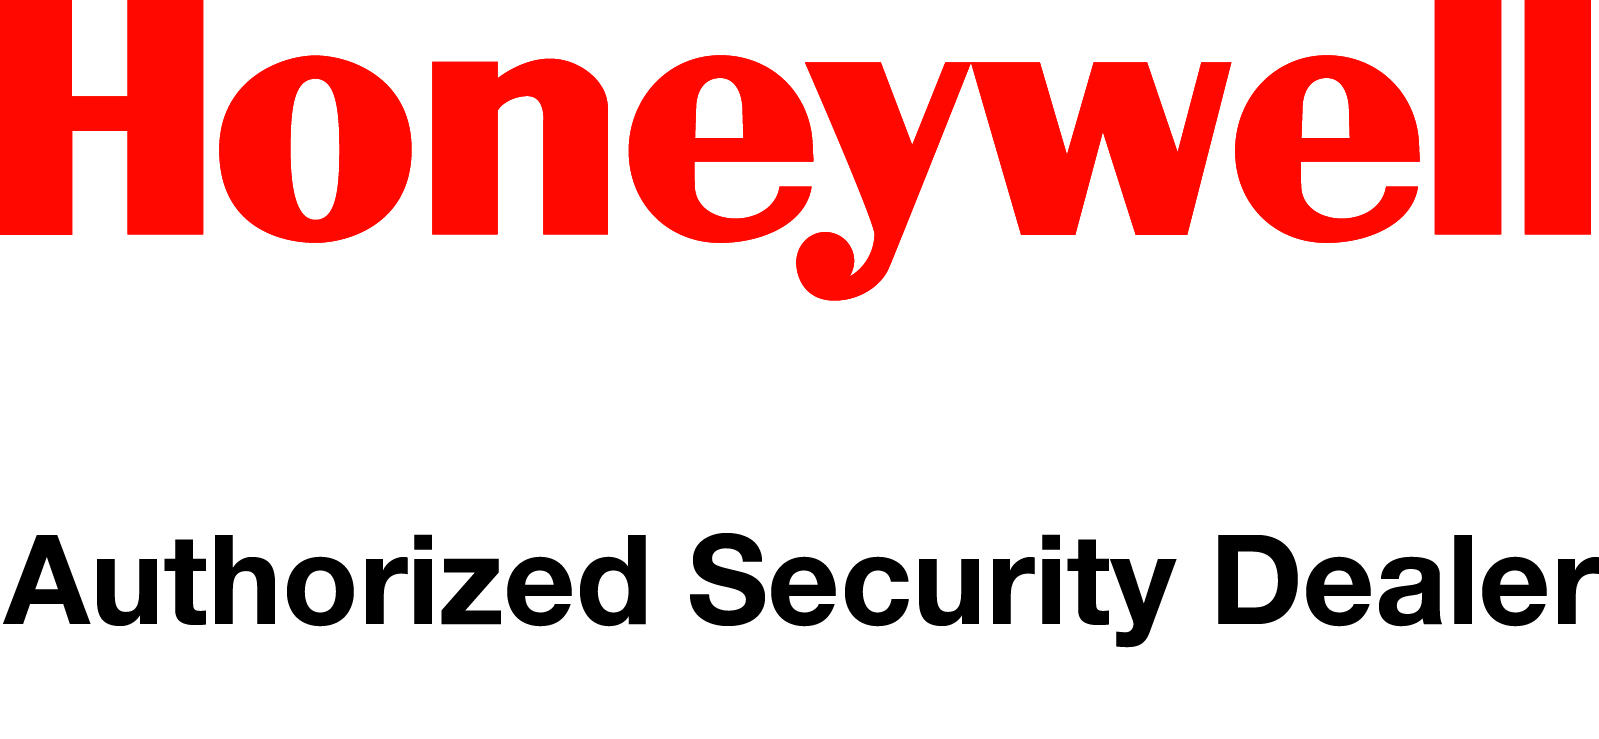 Honeywell Autorized Security Dealer